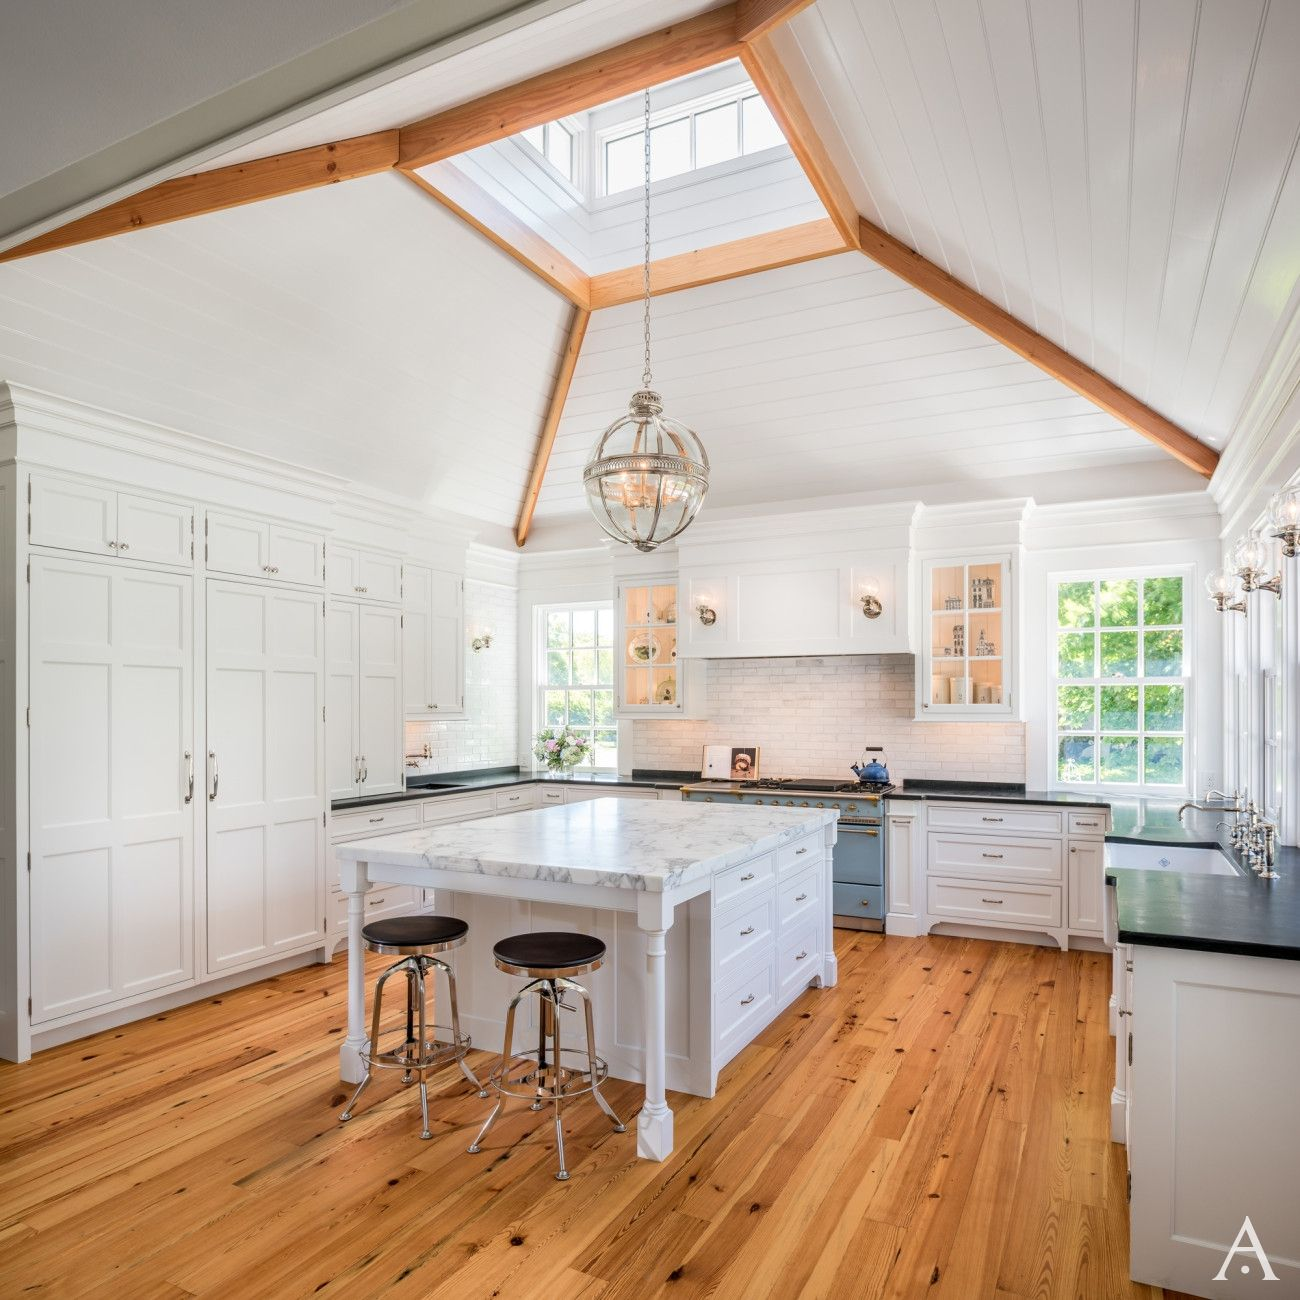 Period Kitchens Designs Renovation: 1917 Gawthrop House In West Chester